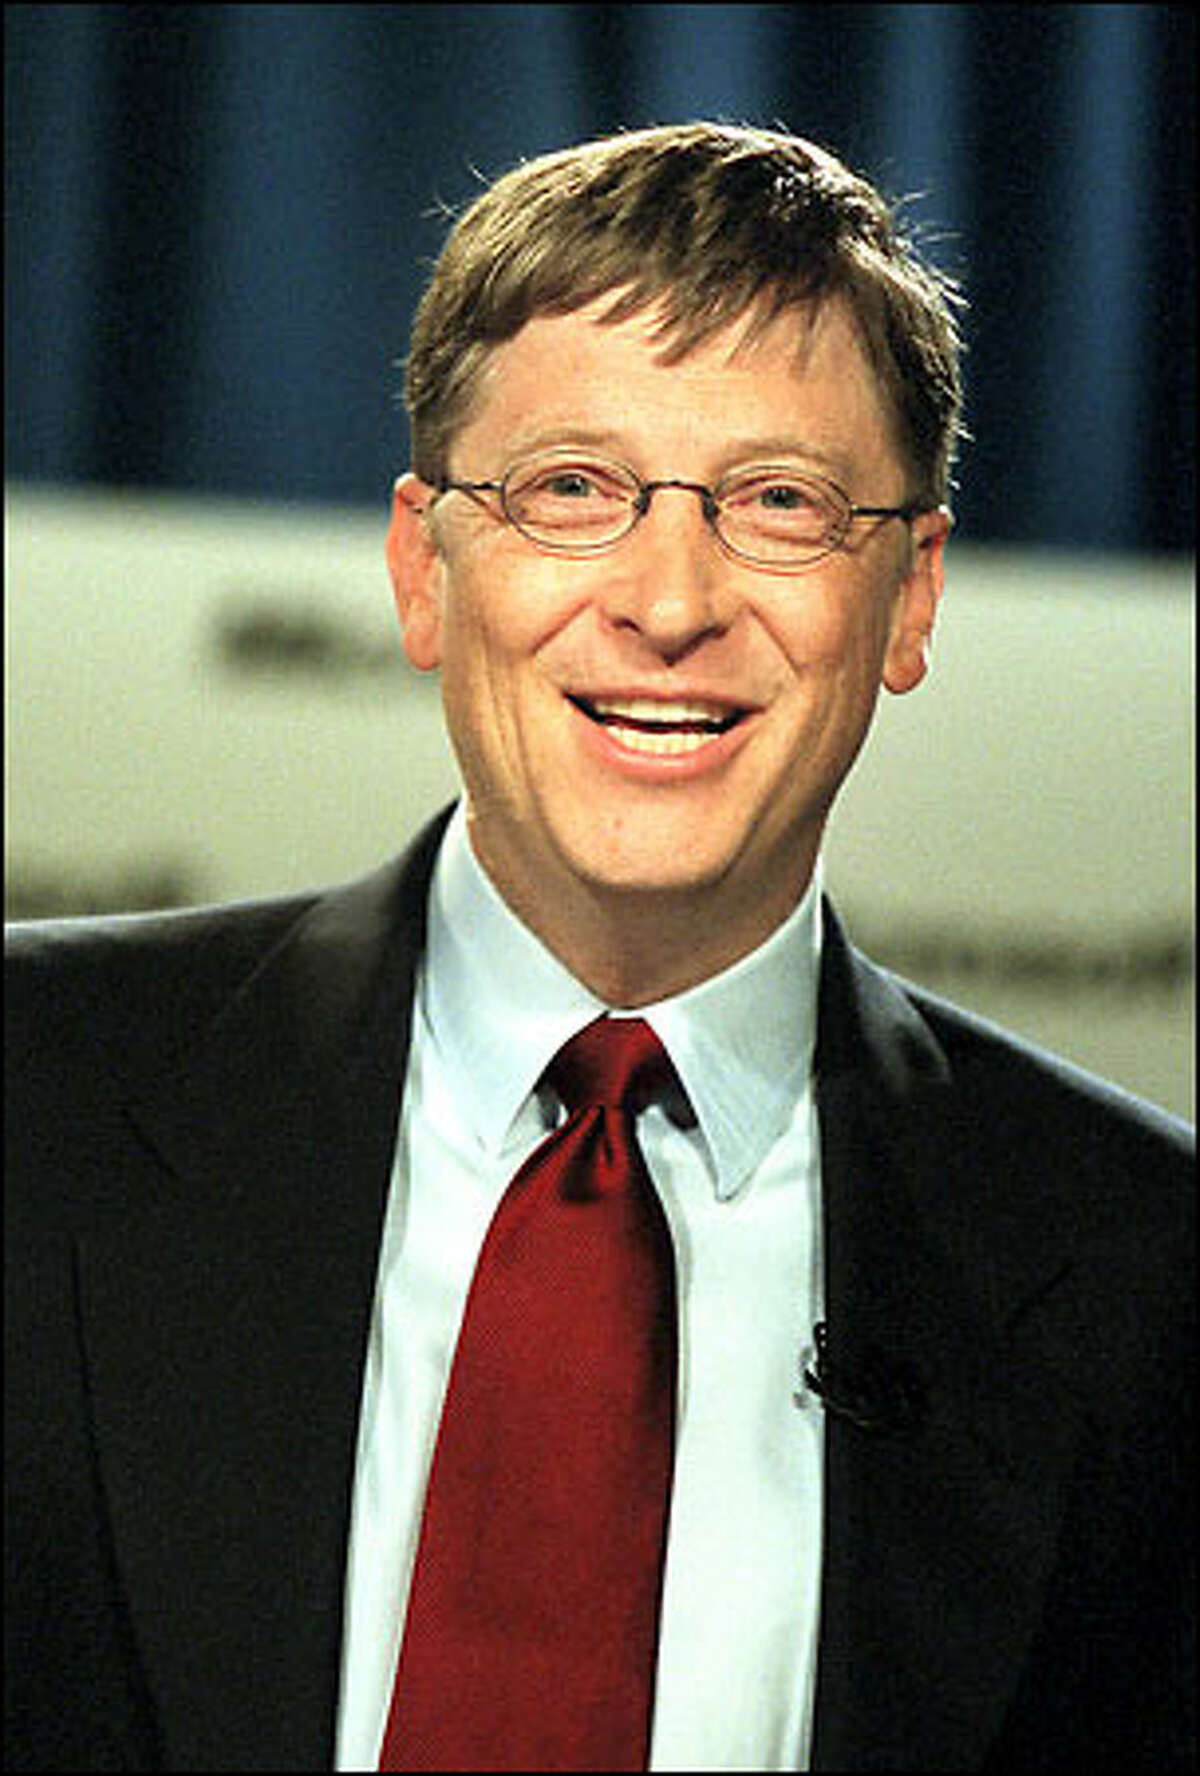 Microsoft's Bill Gates smiles as he talks about the appeals court decision handed down yesterday.